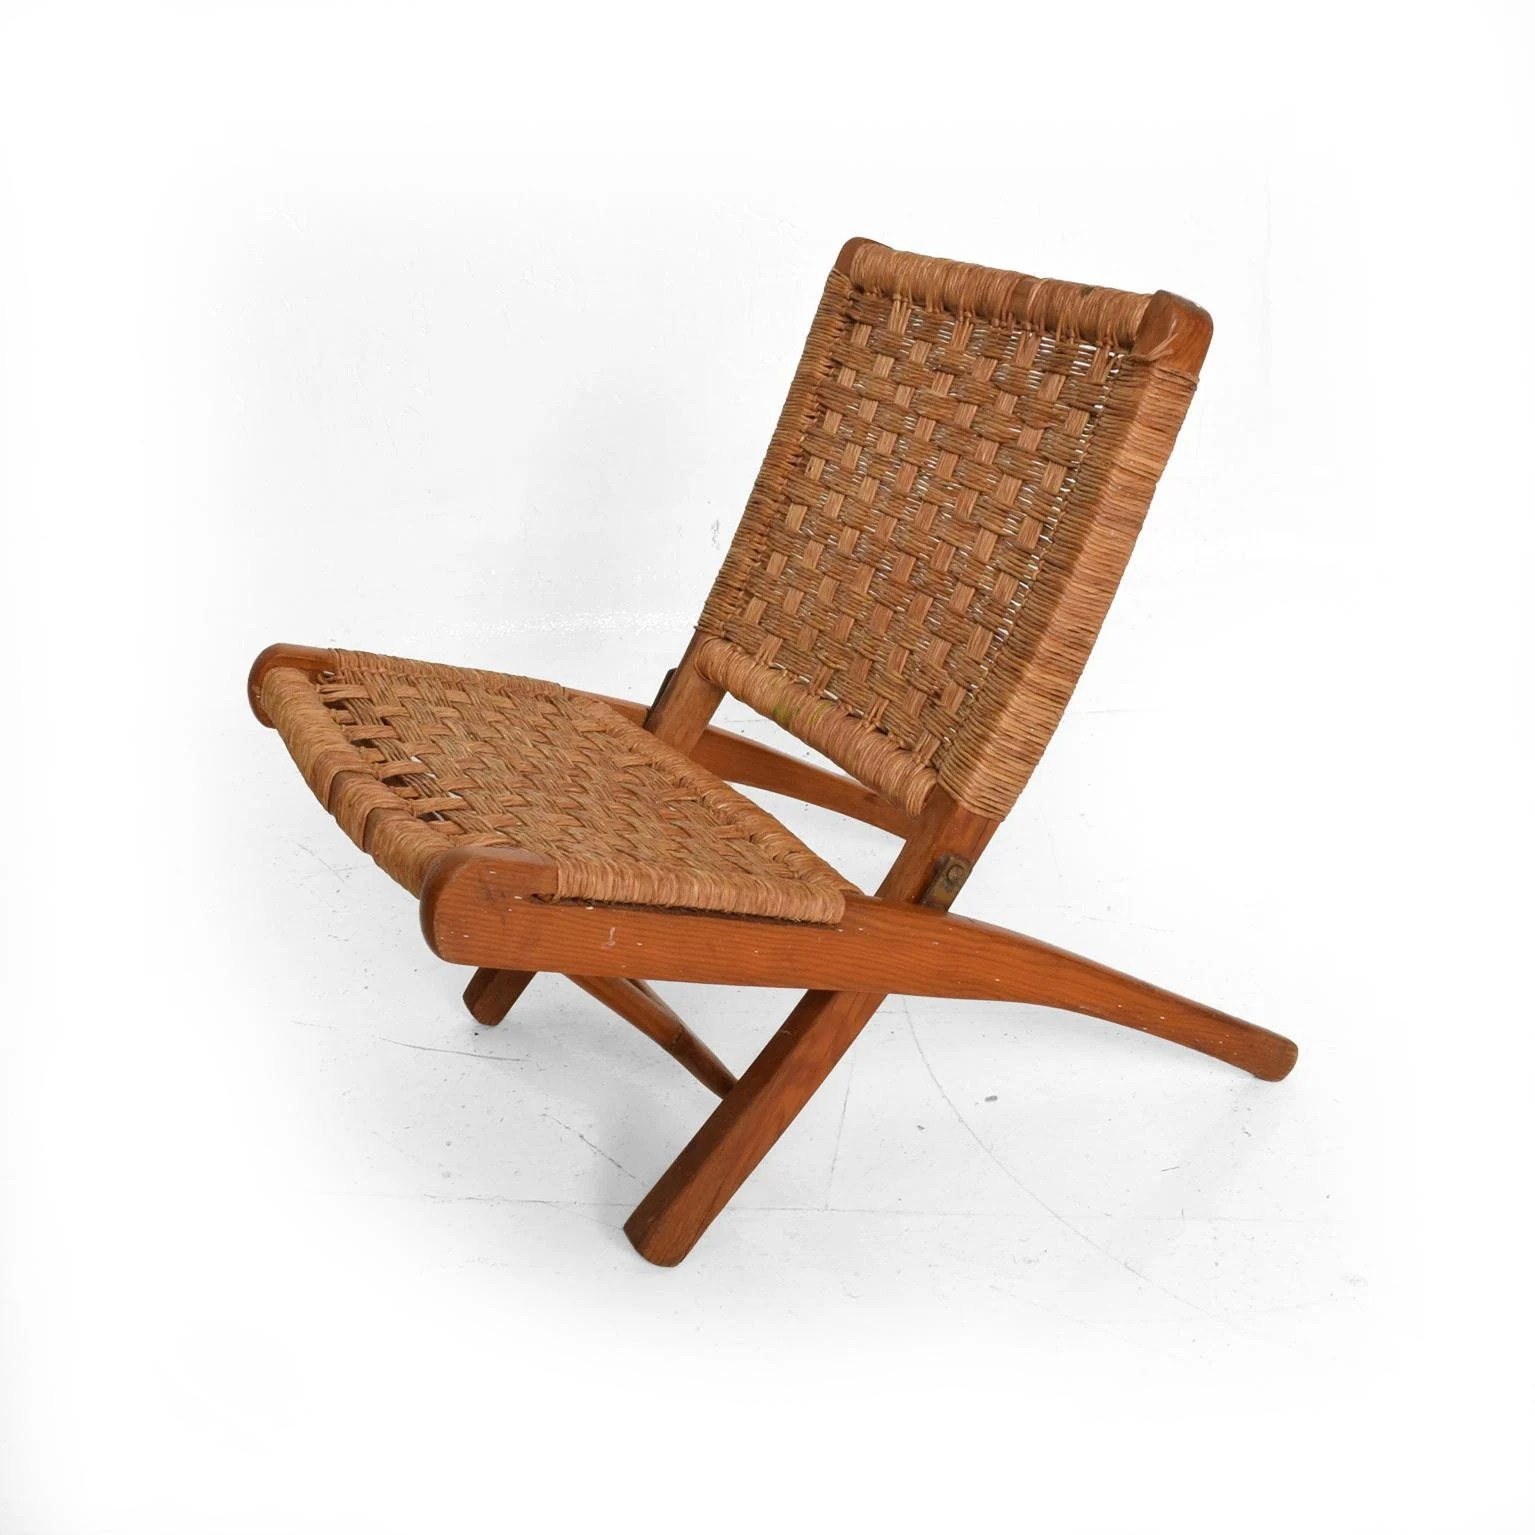 Mexican Rocking Chair Mexican Modernist Small Folding Chair After Clara Porset